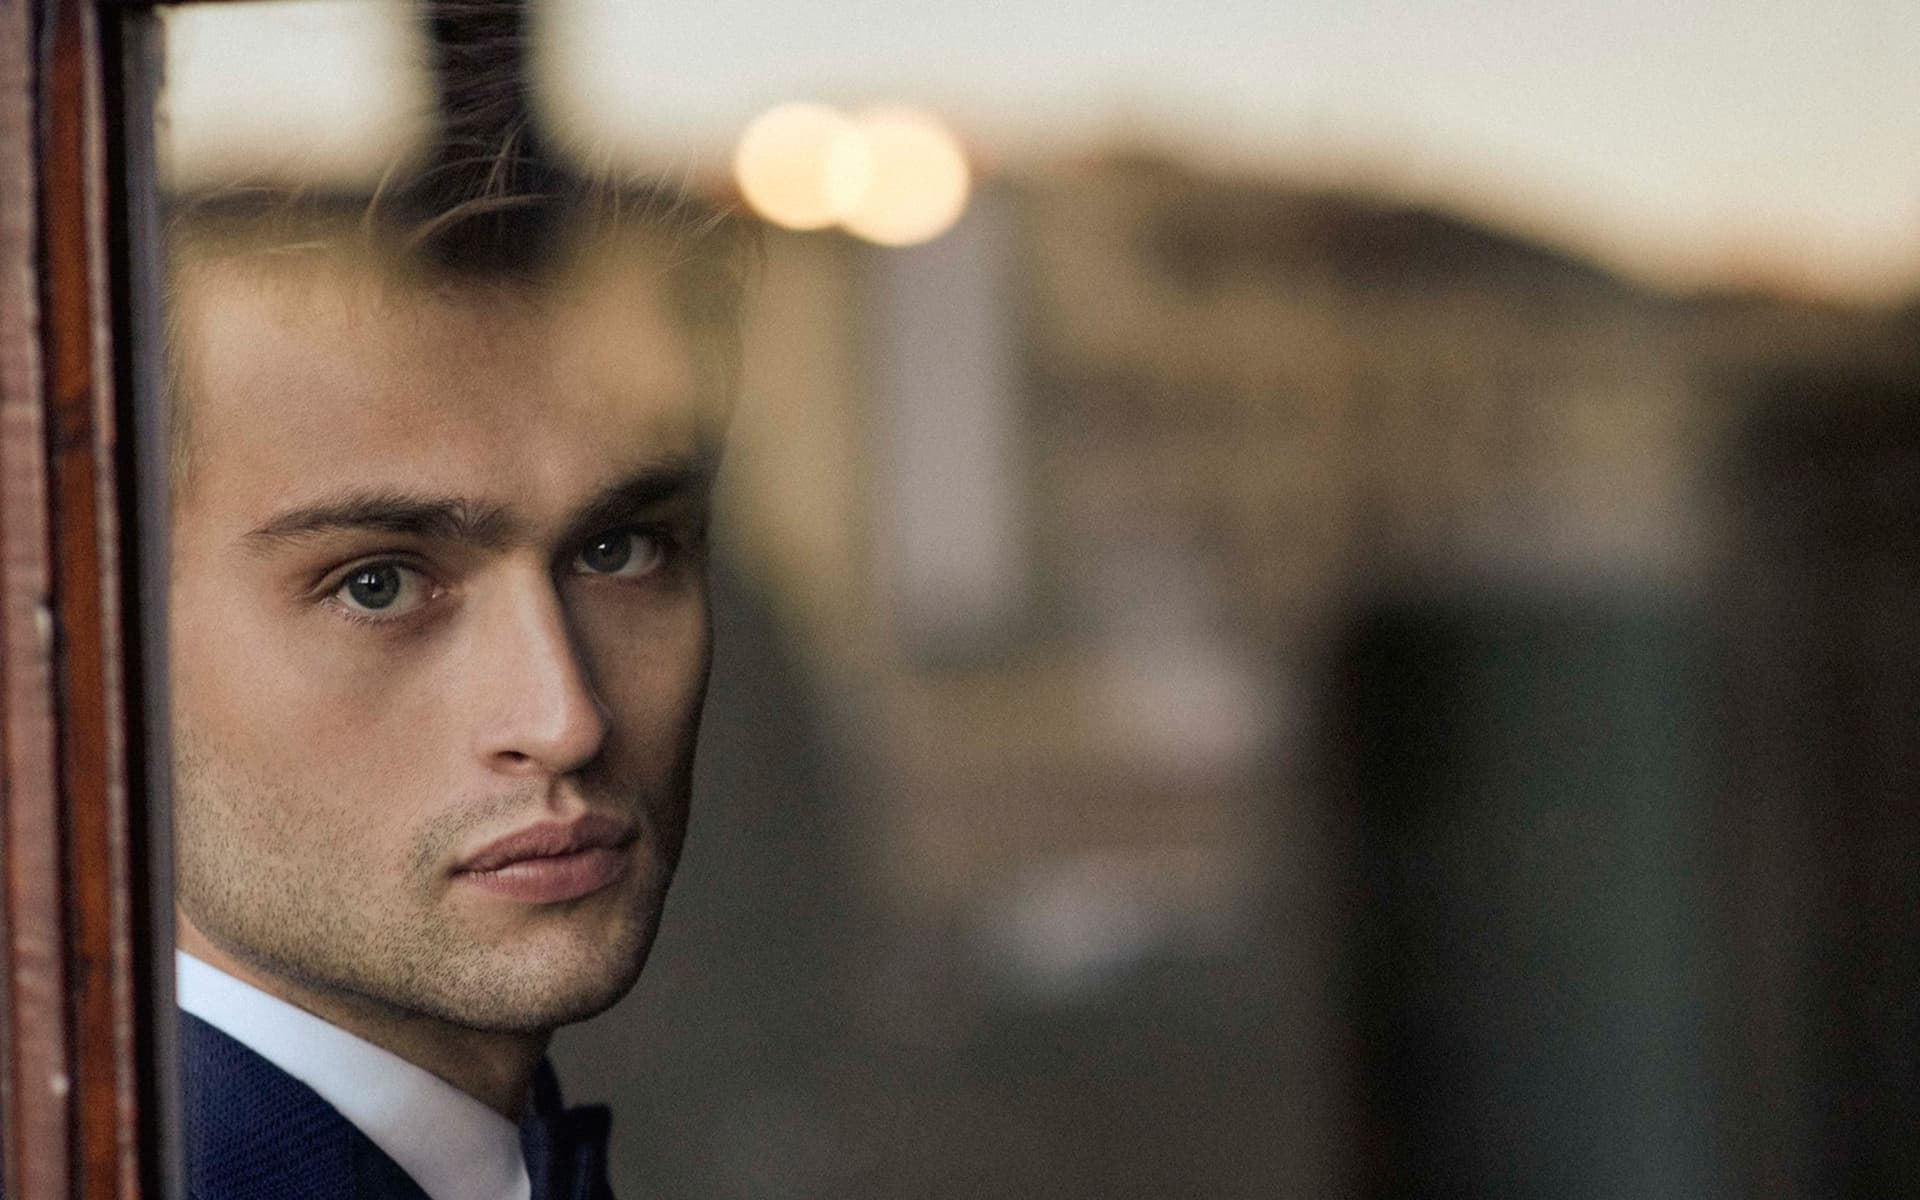 1920x1200 - Douglas Booth Wallpapers 1